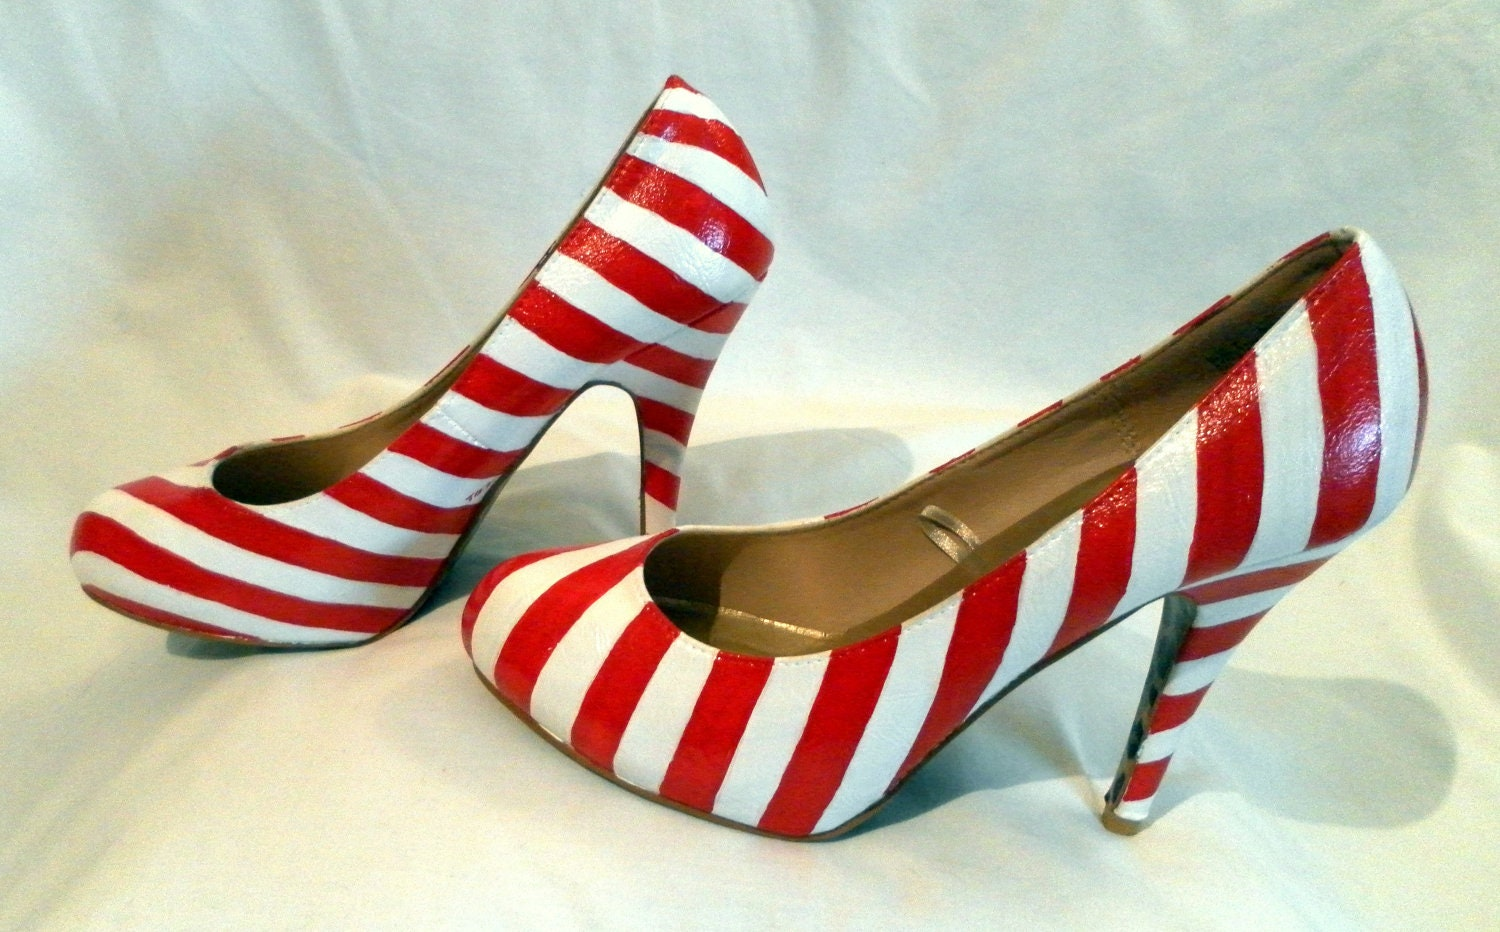 Custom hand painted candy cane striped high heel